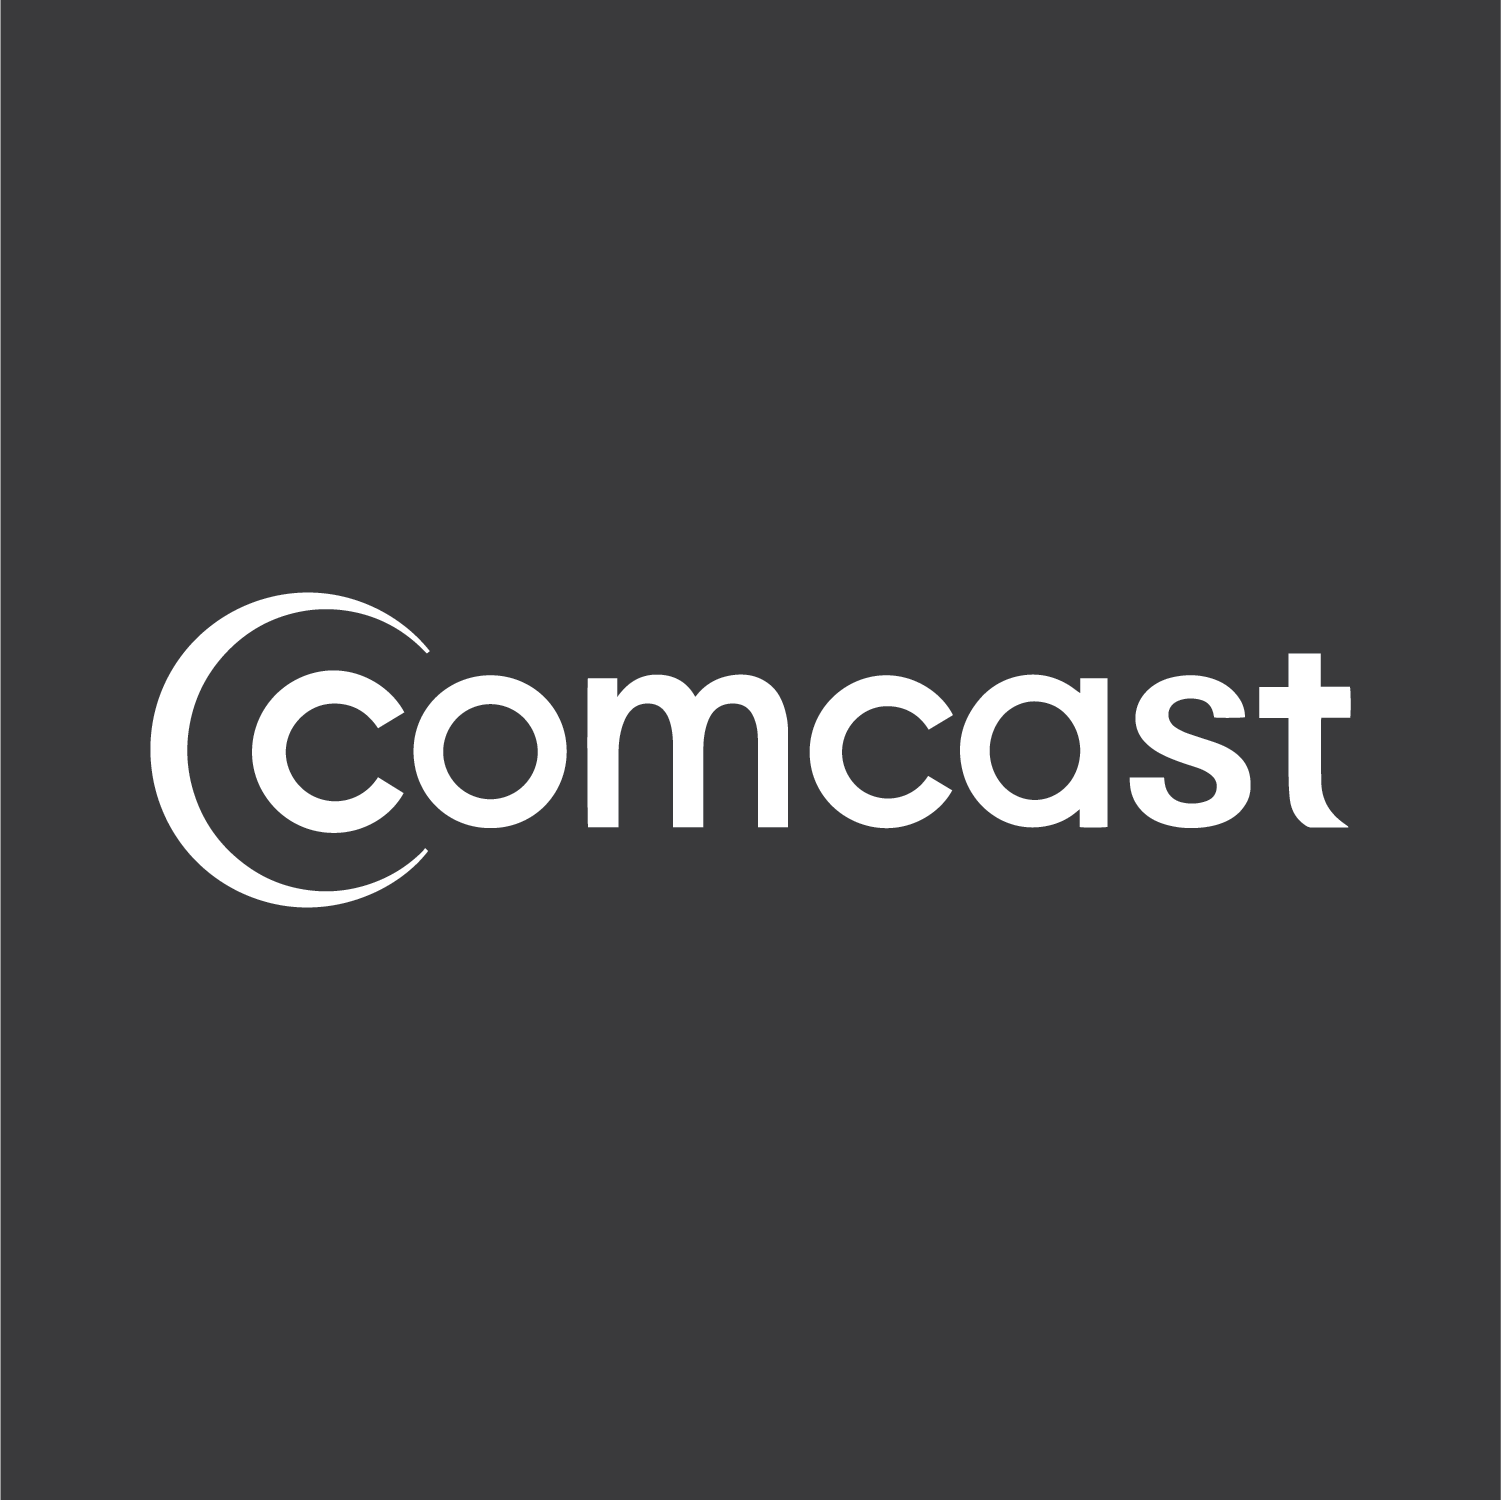 """Correct! Comcast is the fourth Migo. Fun fact: he was also left off """"Bad and Boujee."""""""